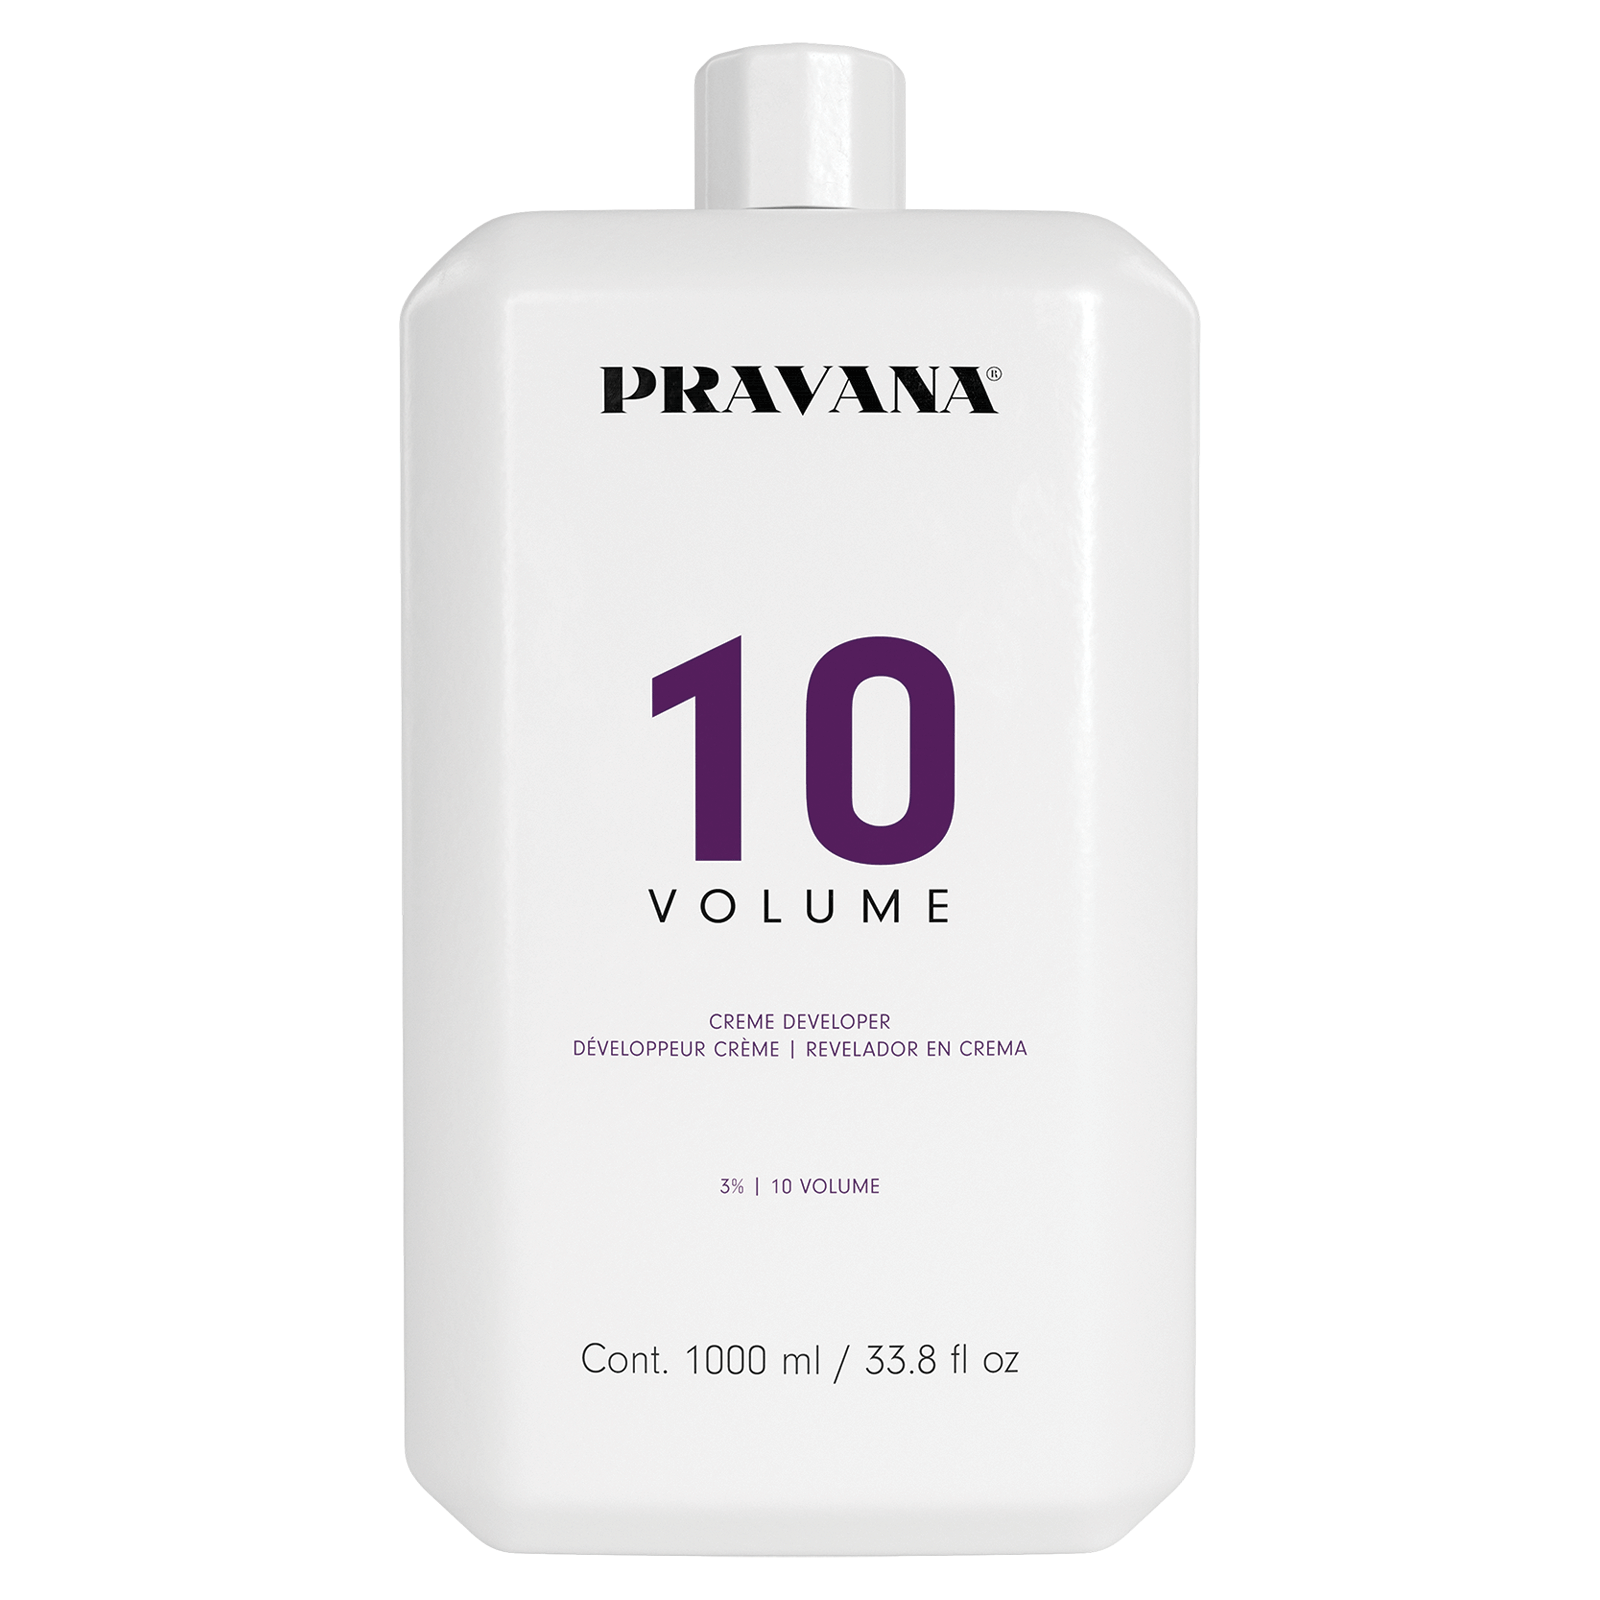 10 Volume Creme Developer